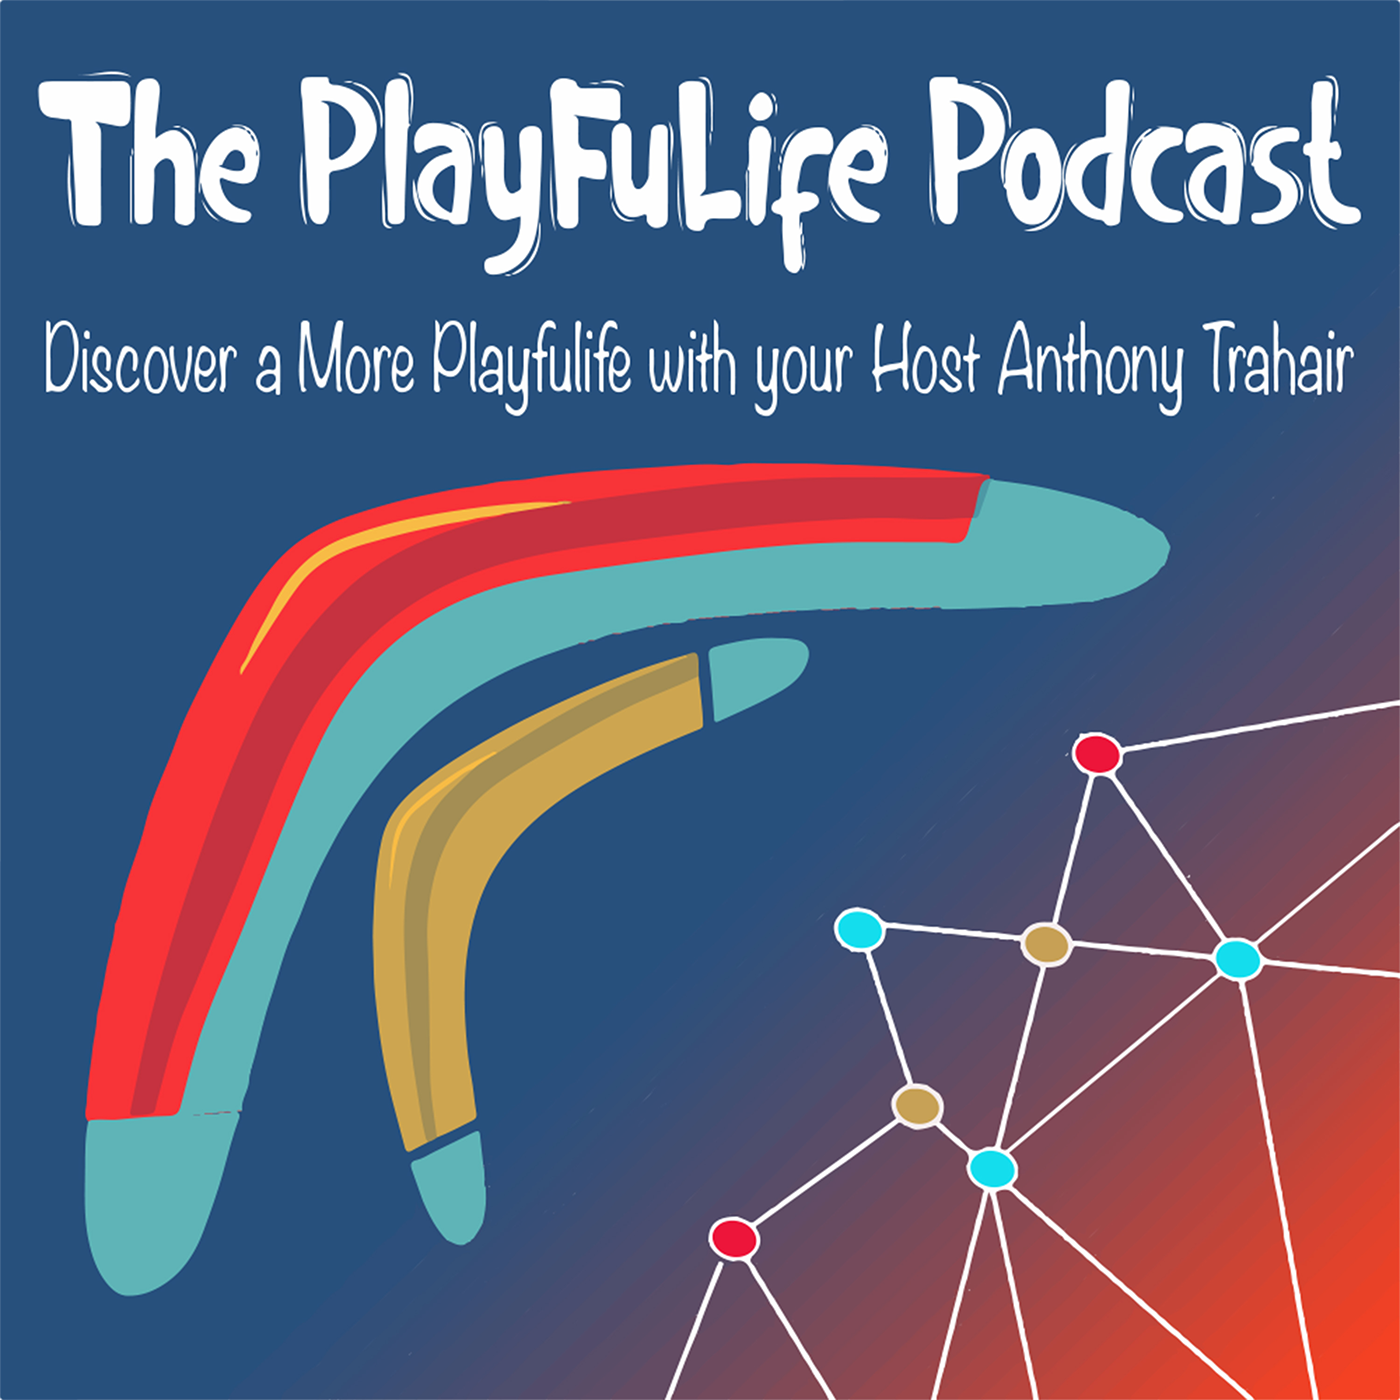 The PlayfuLife Podcast